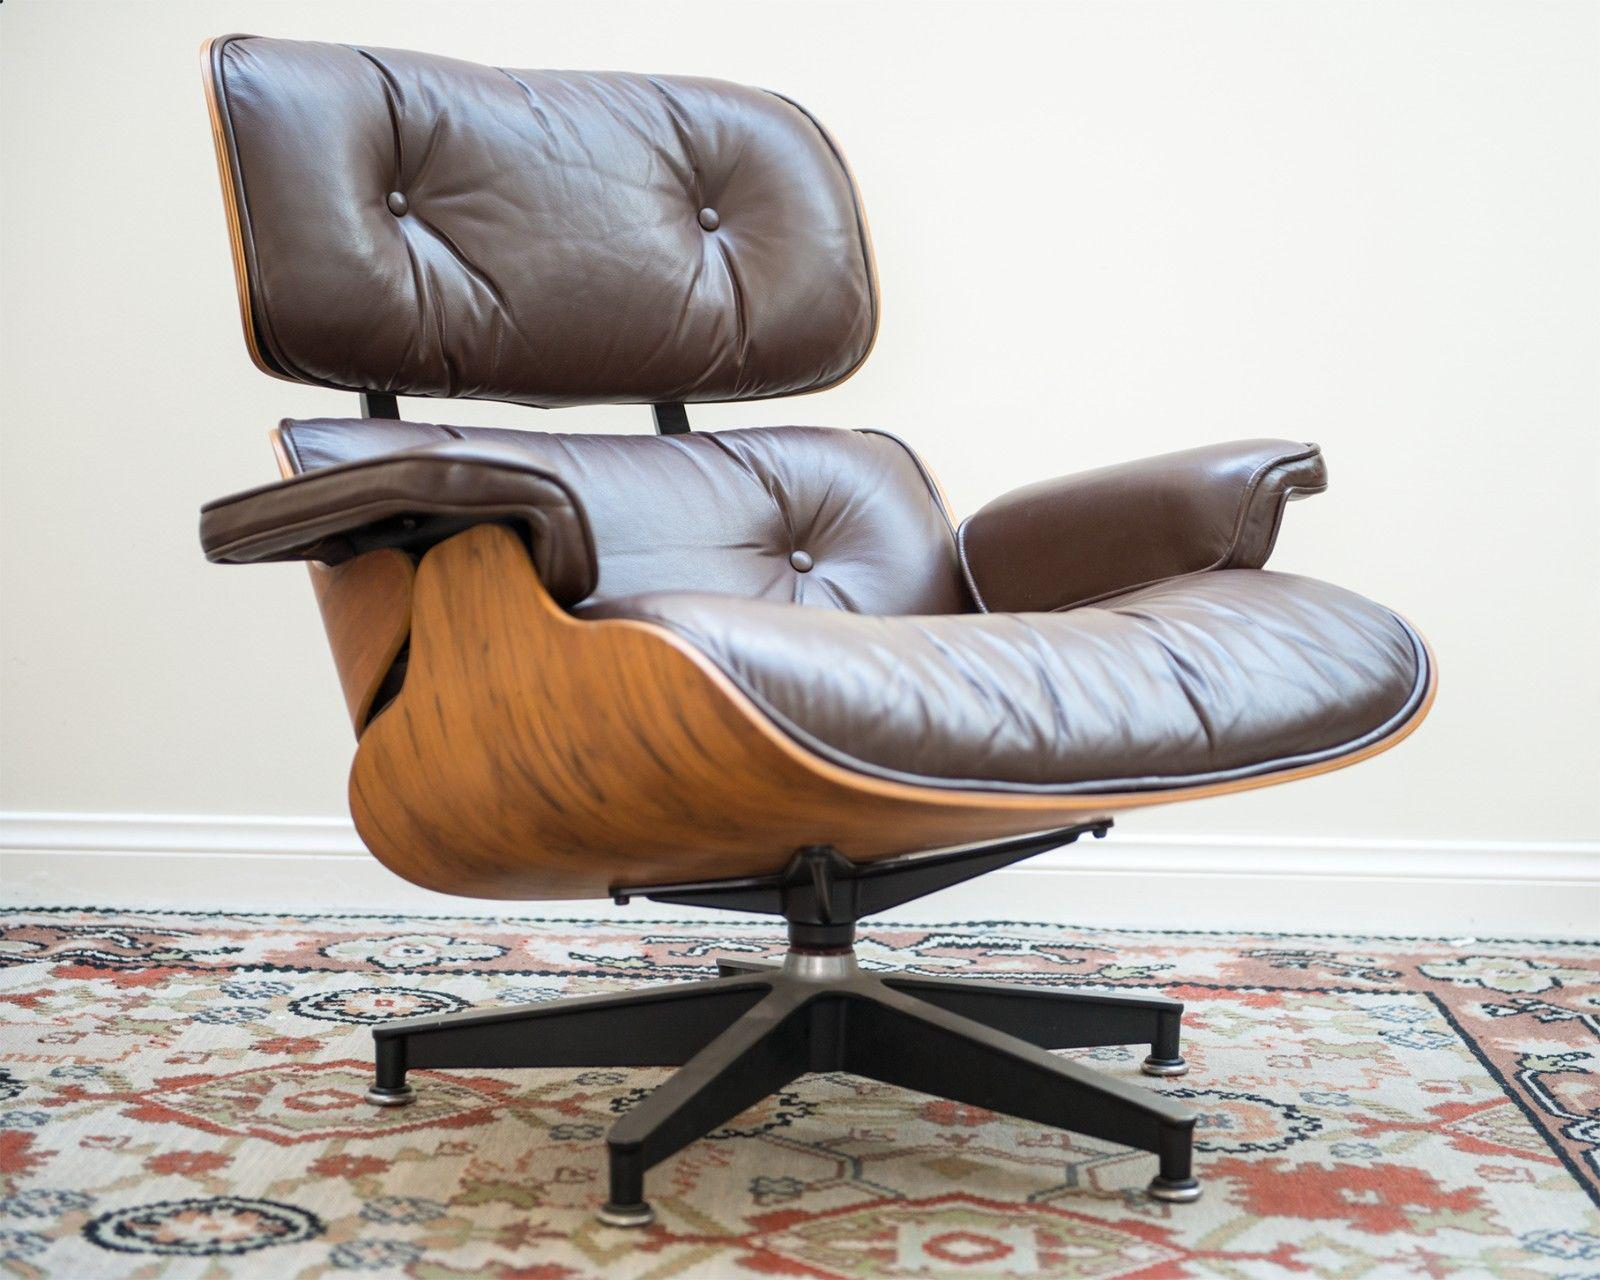 Ordinaire Herman Miller Herman Miller Eames Lounge Chair For Sale   Image 4 Of 10